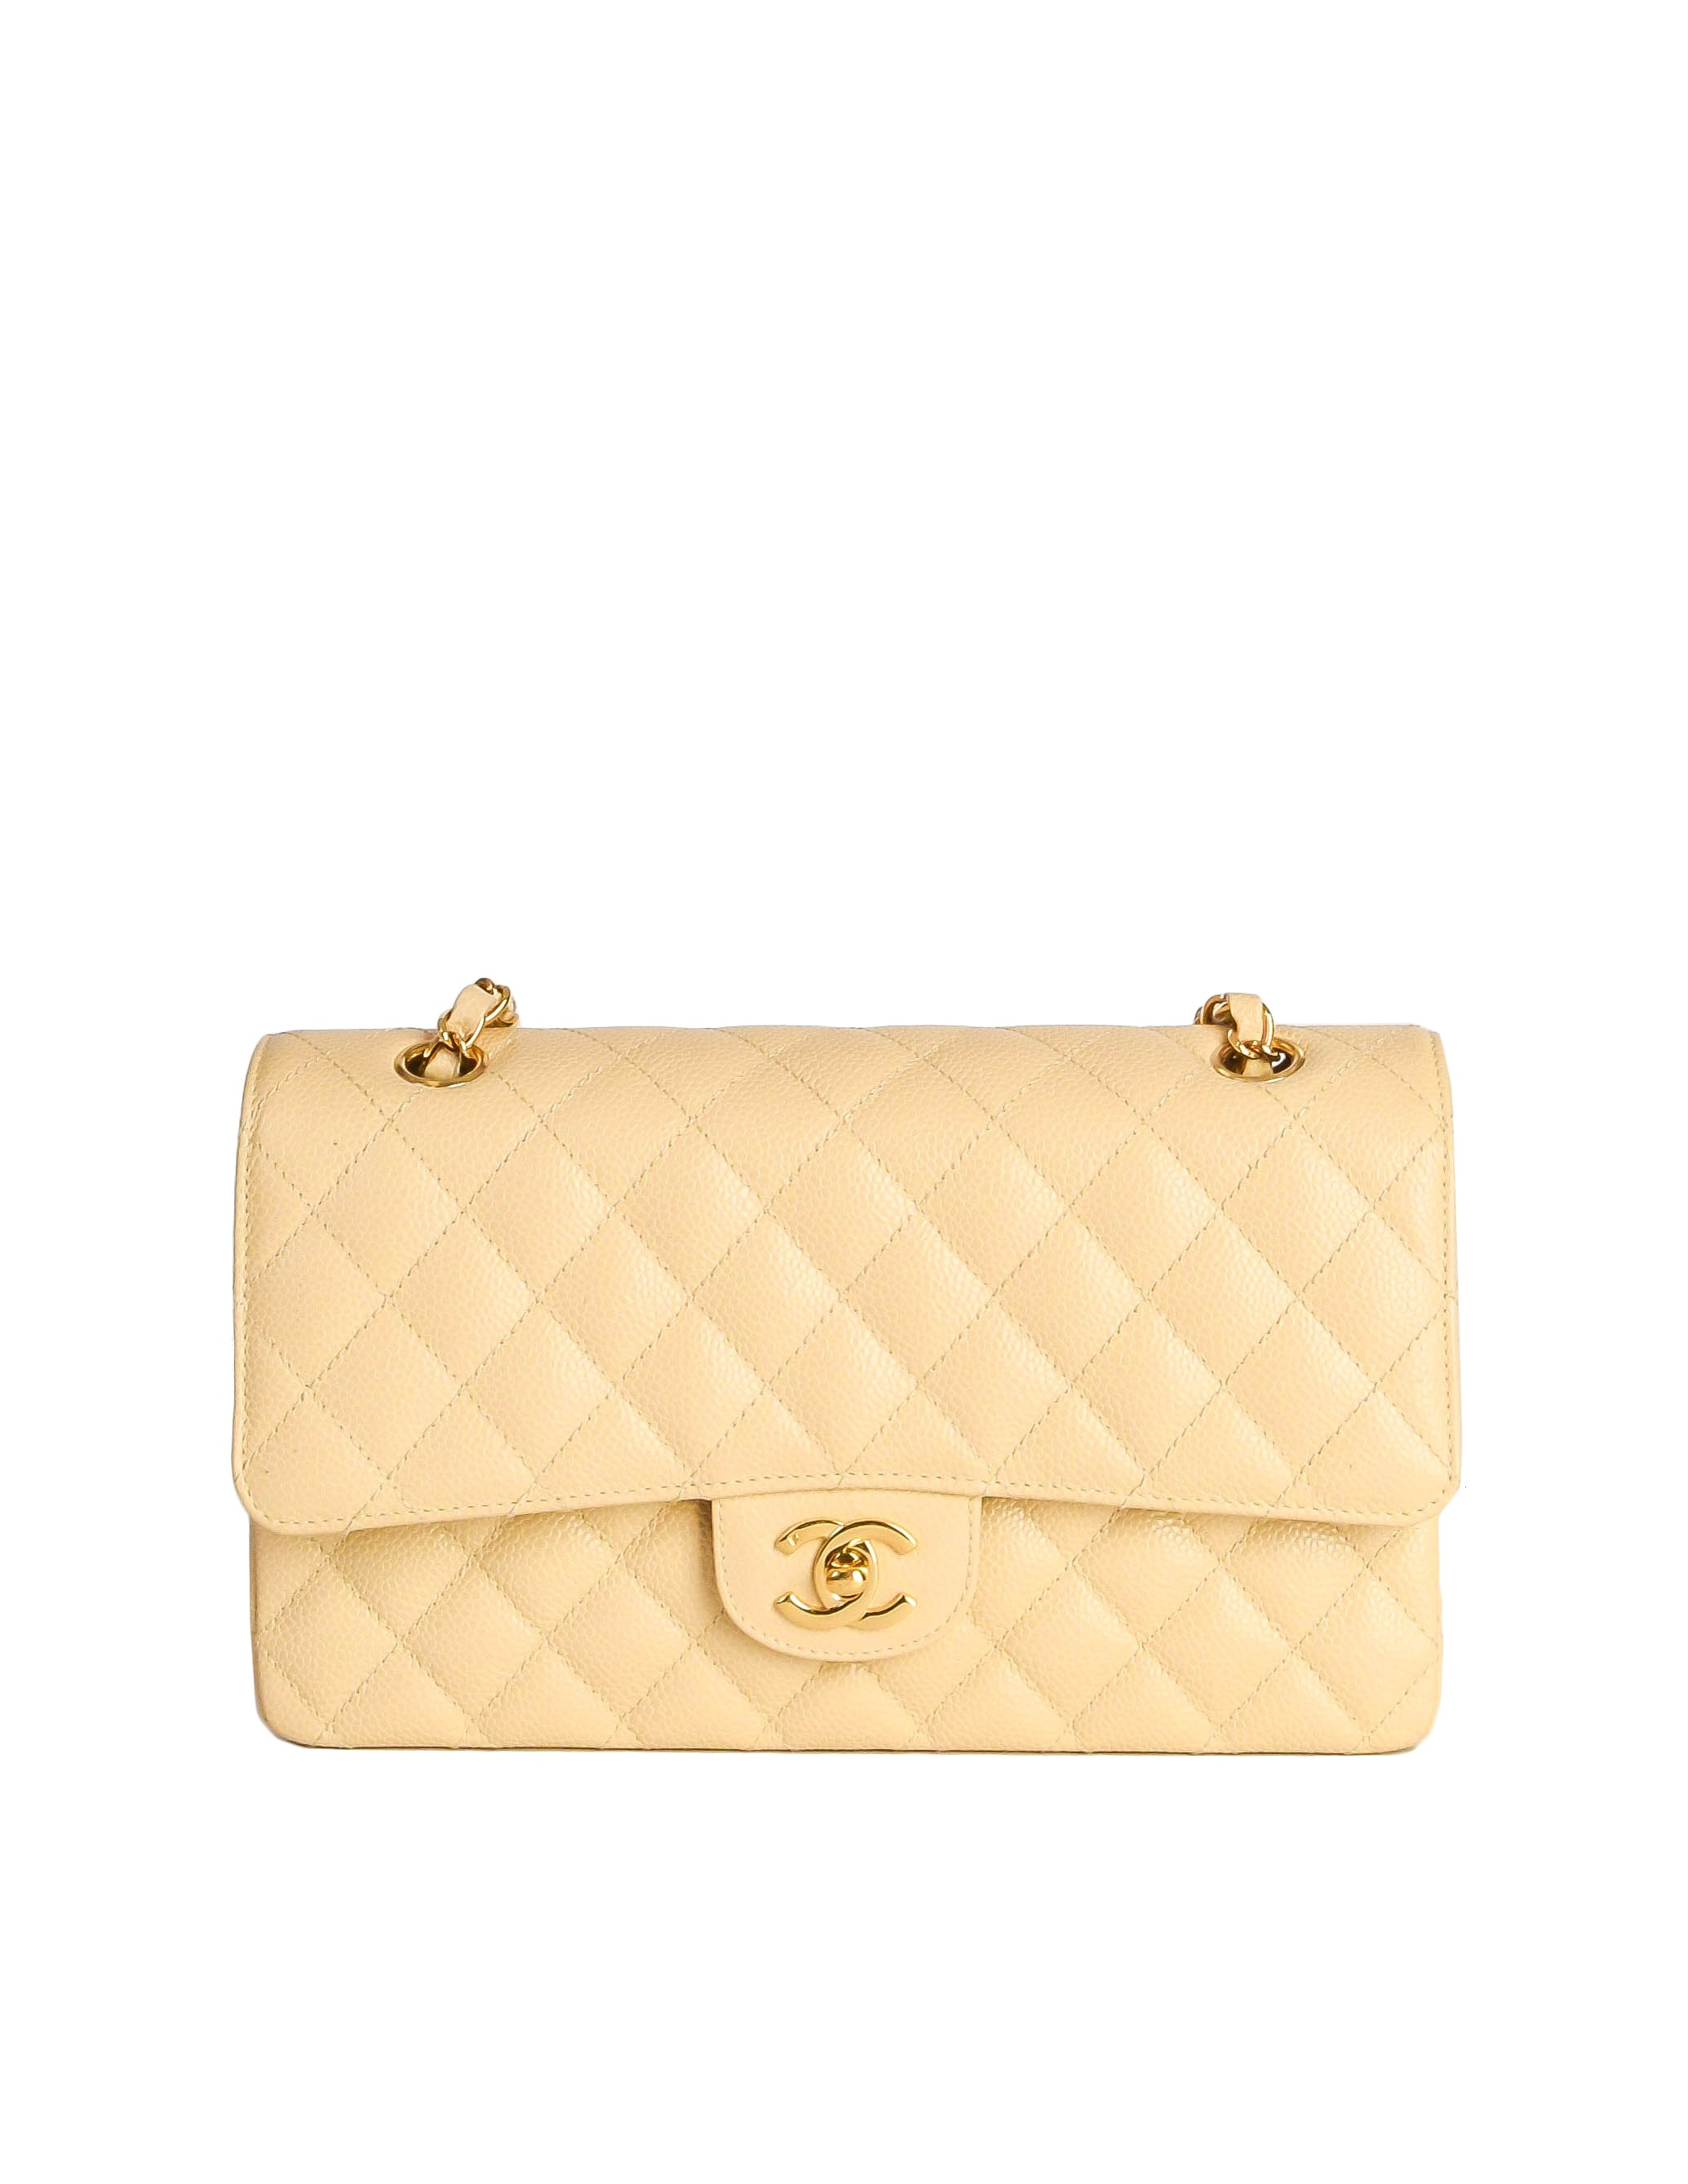 Chanel Vintage Cream Caviar Quilted 2.55 Medium Classic Double Flap ... 50316ea75efe8